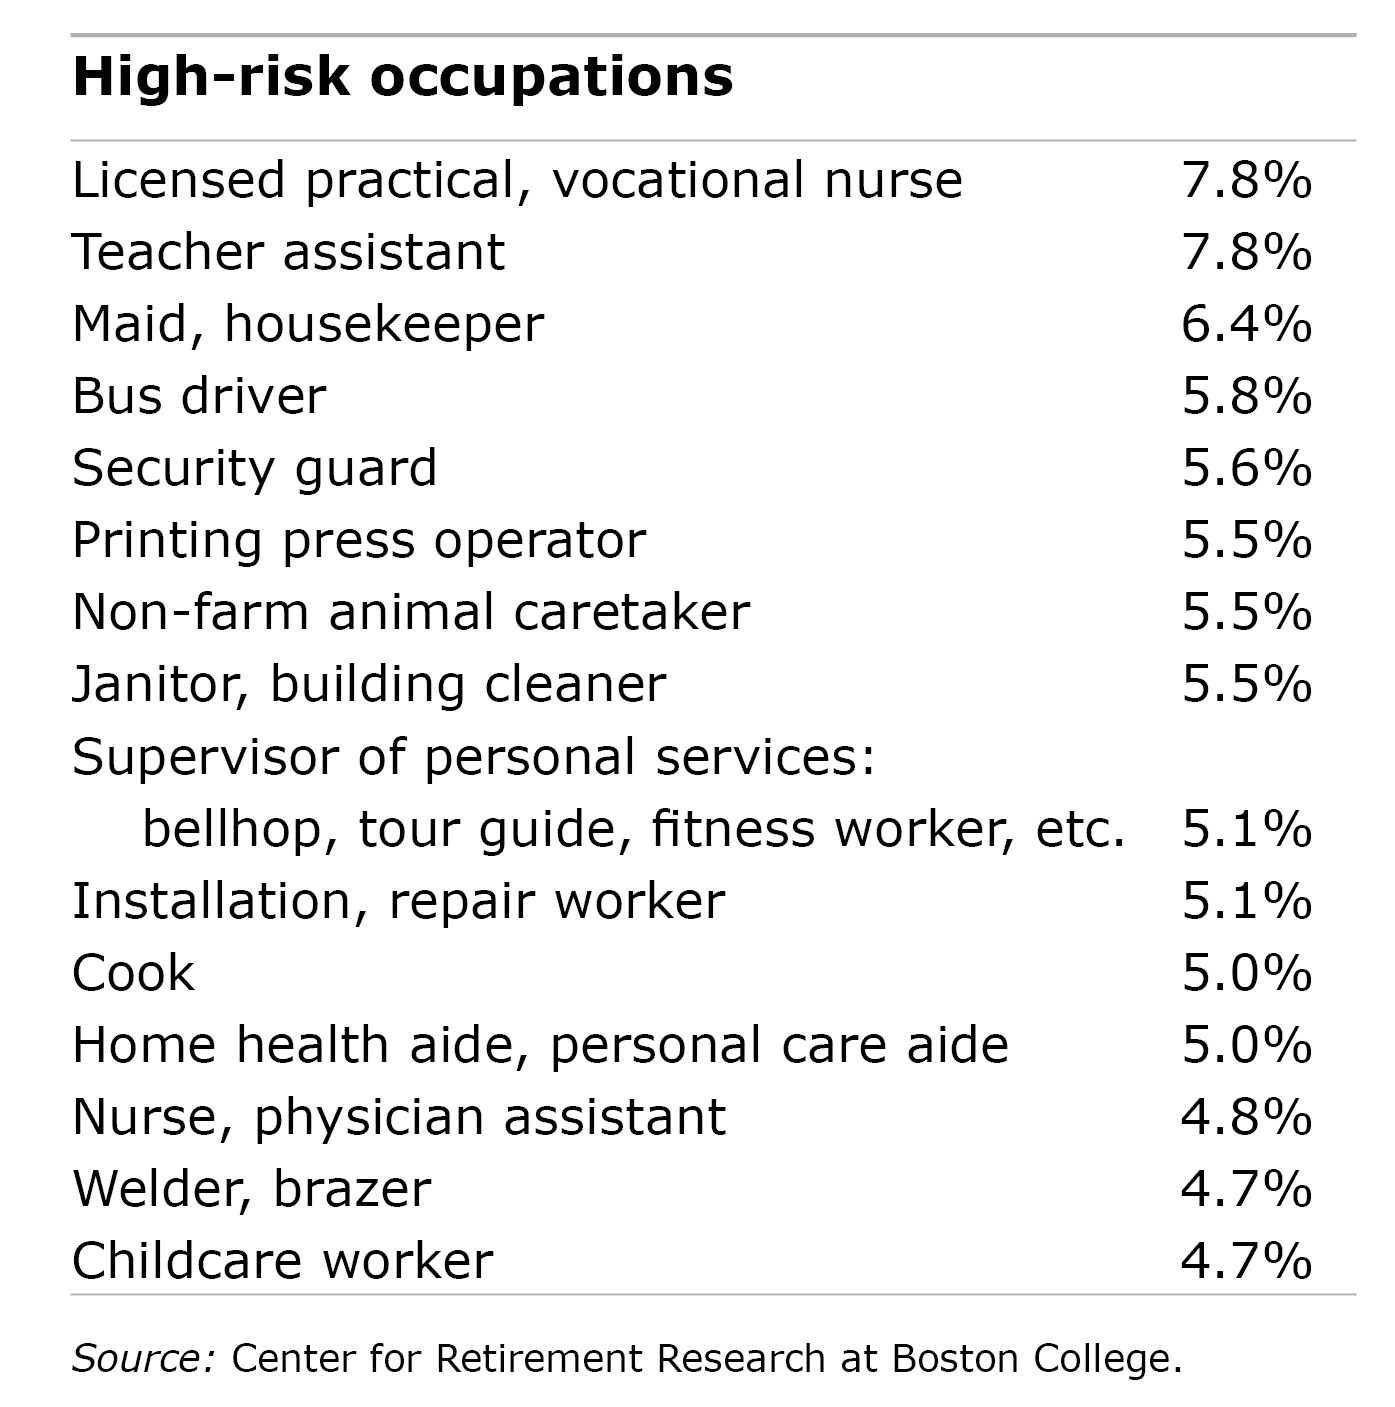 Table showing high-risk occupations